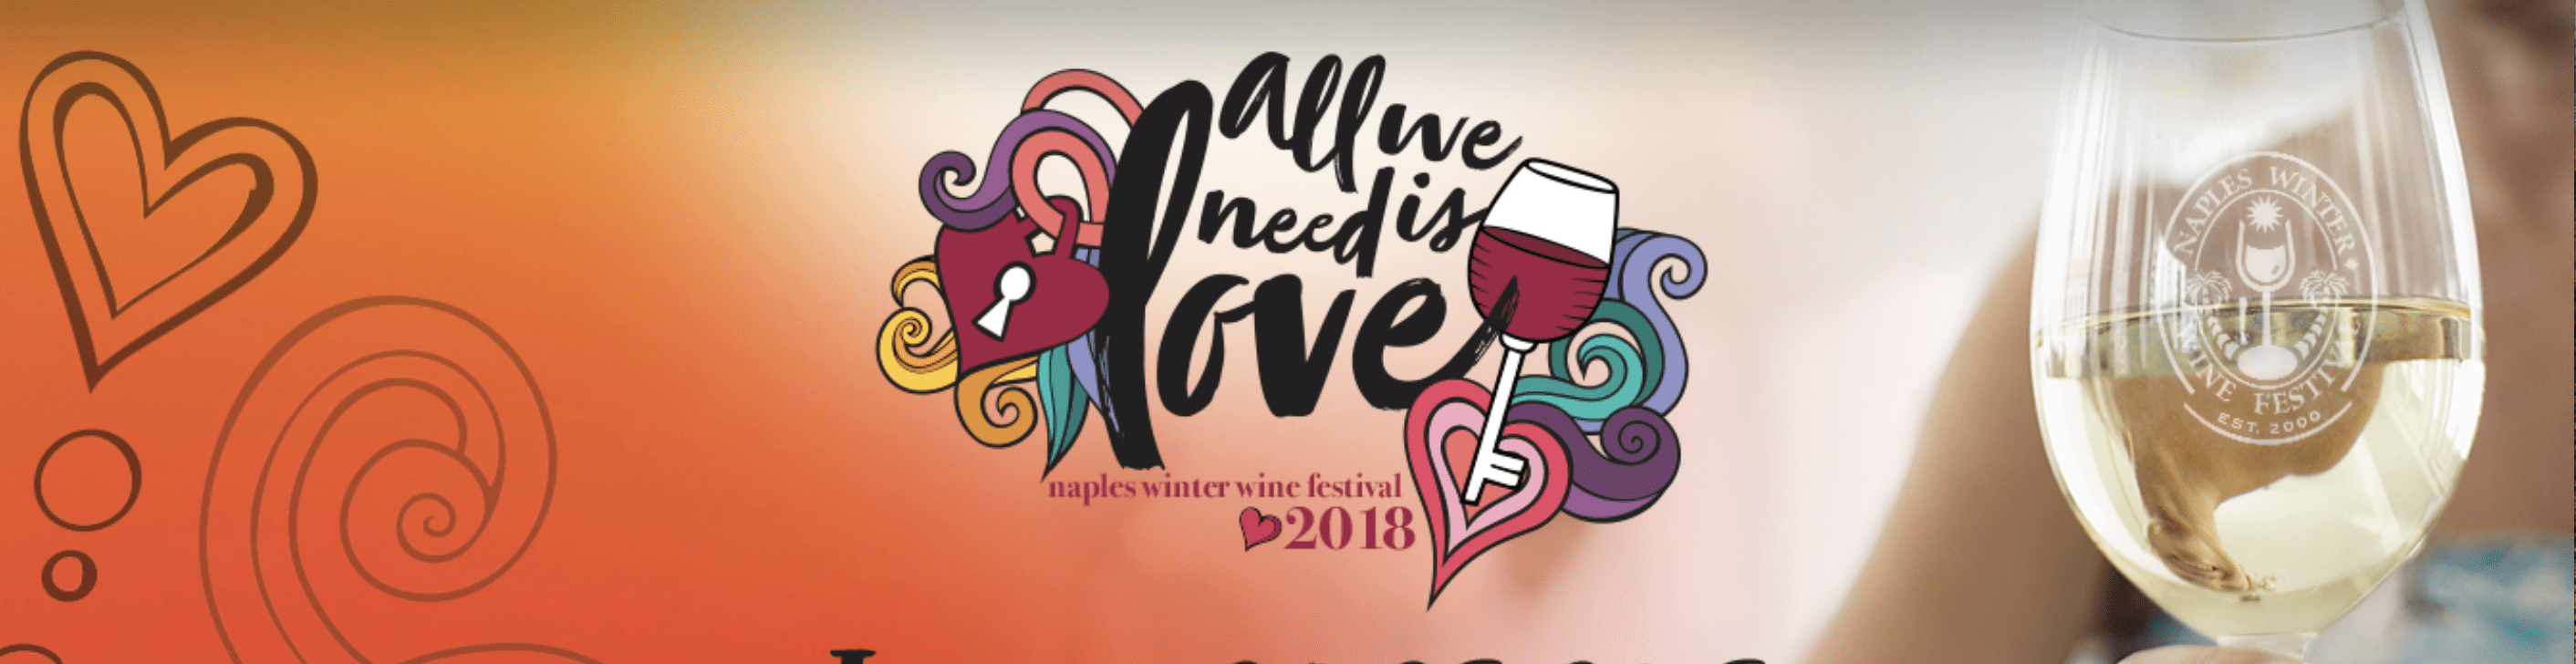 Naples Movers Participate in the Naples Winter Wine Festival 2018